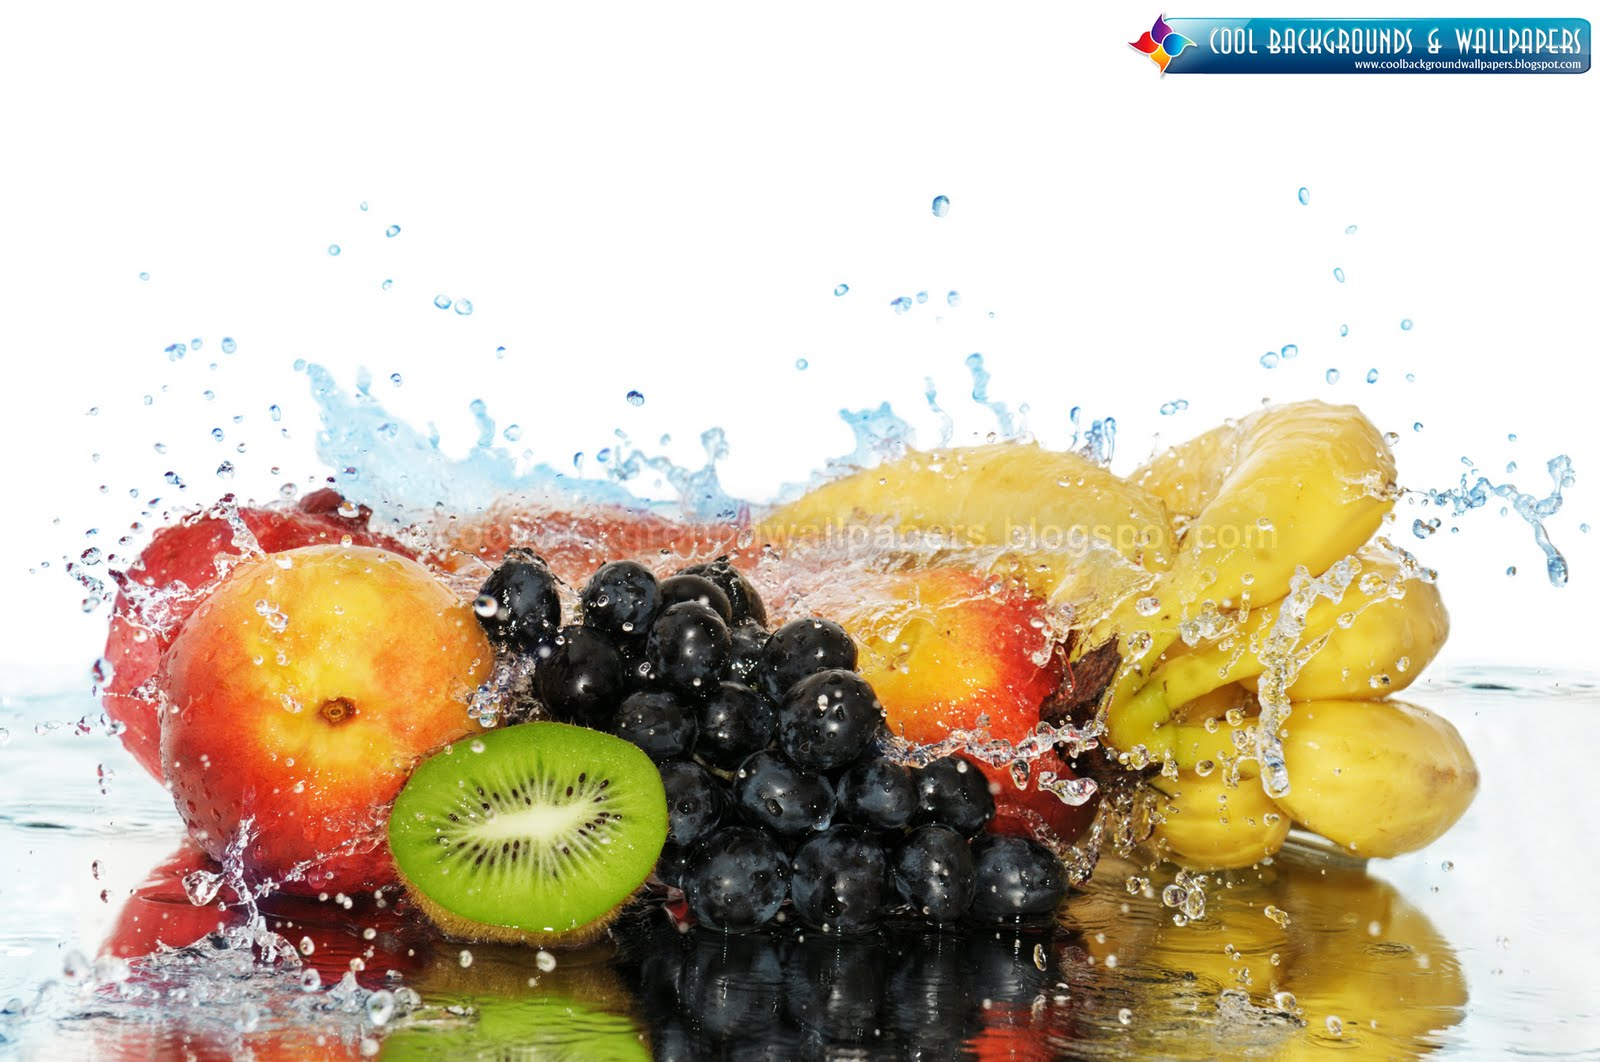 Cute Backgrounds and Wallpapers Fruit in a spray of water 1600x1062